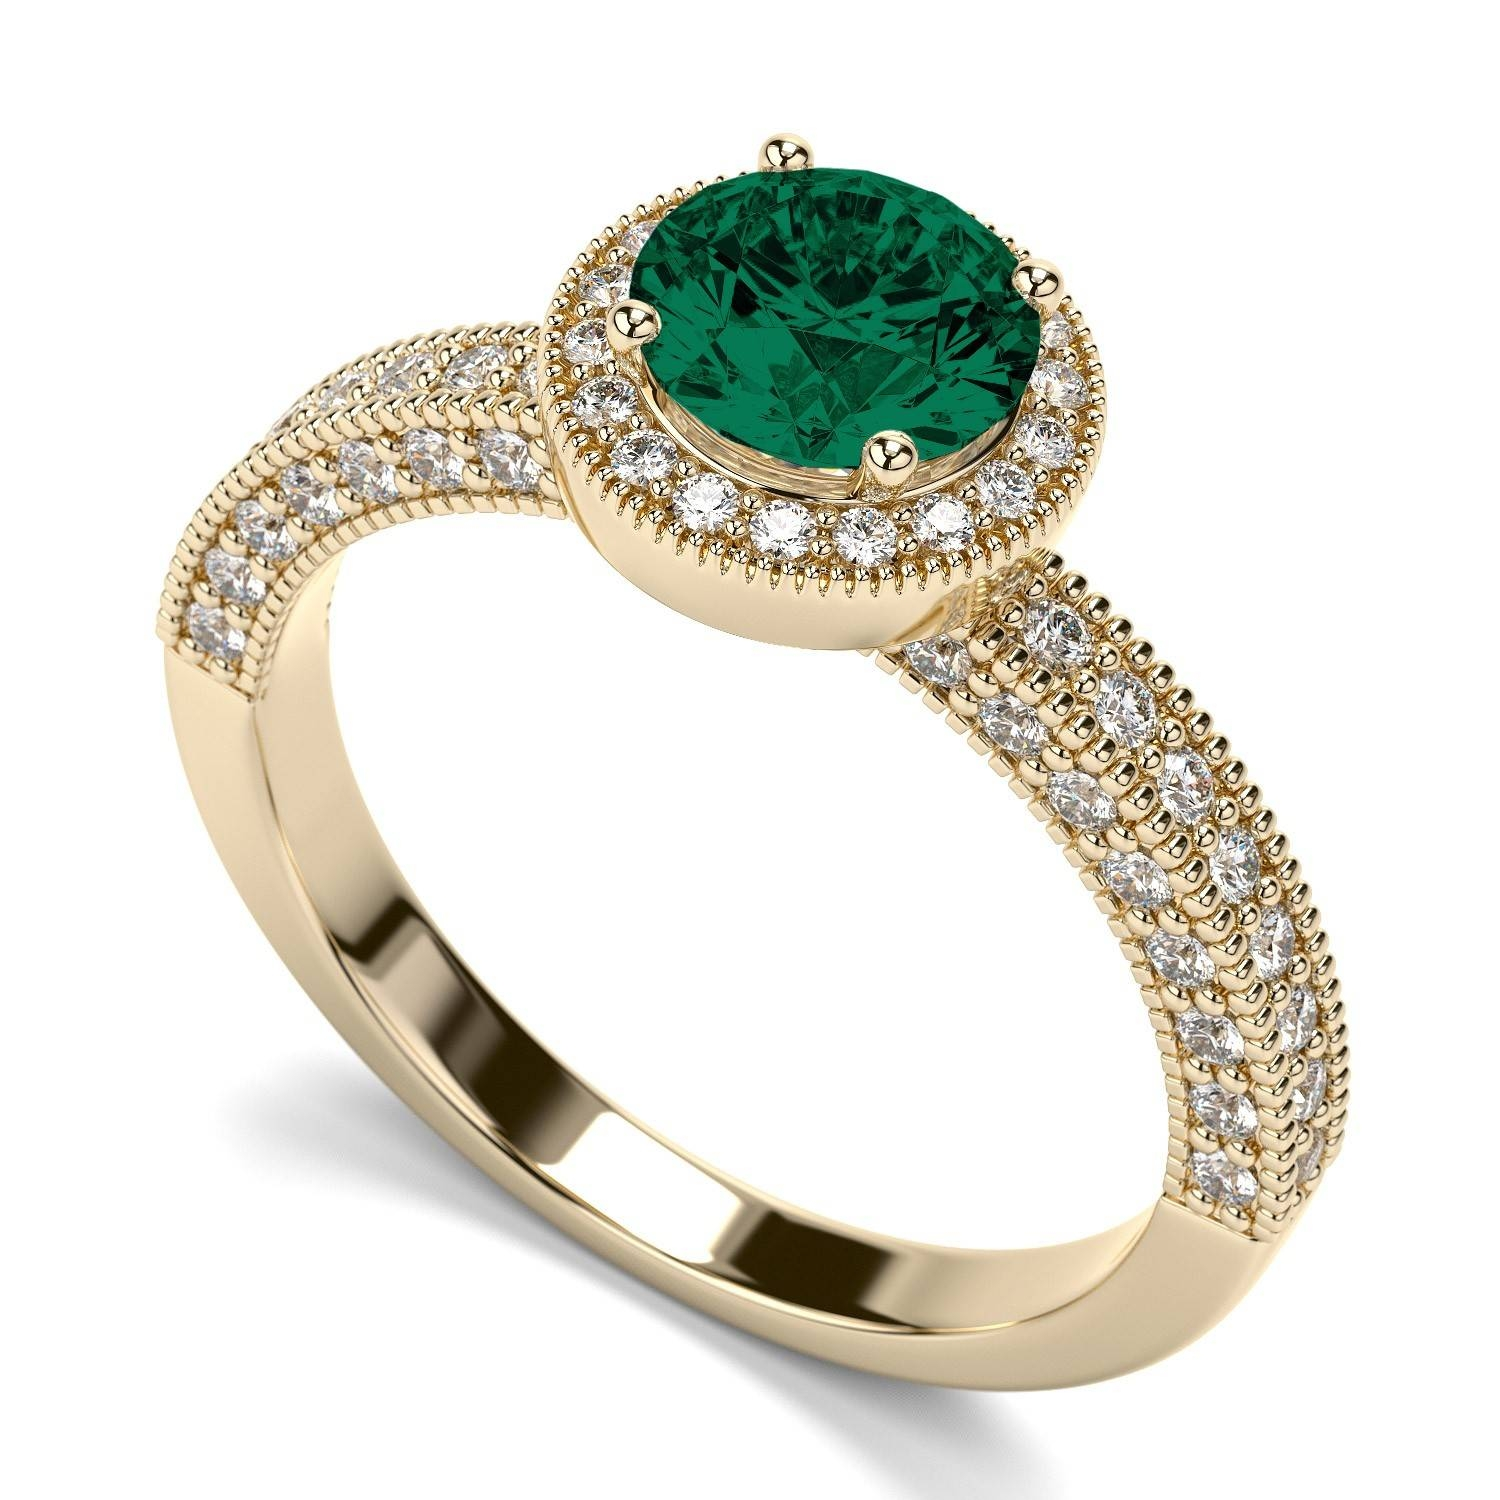 7mm Victorian Vintage Round Emerald Gemstone Engagement Ring In Within Emrald Engagement Rings (View 11 of 15)